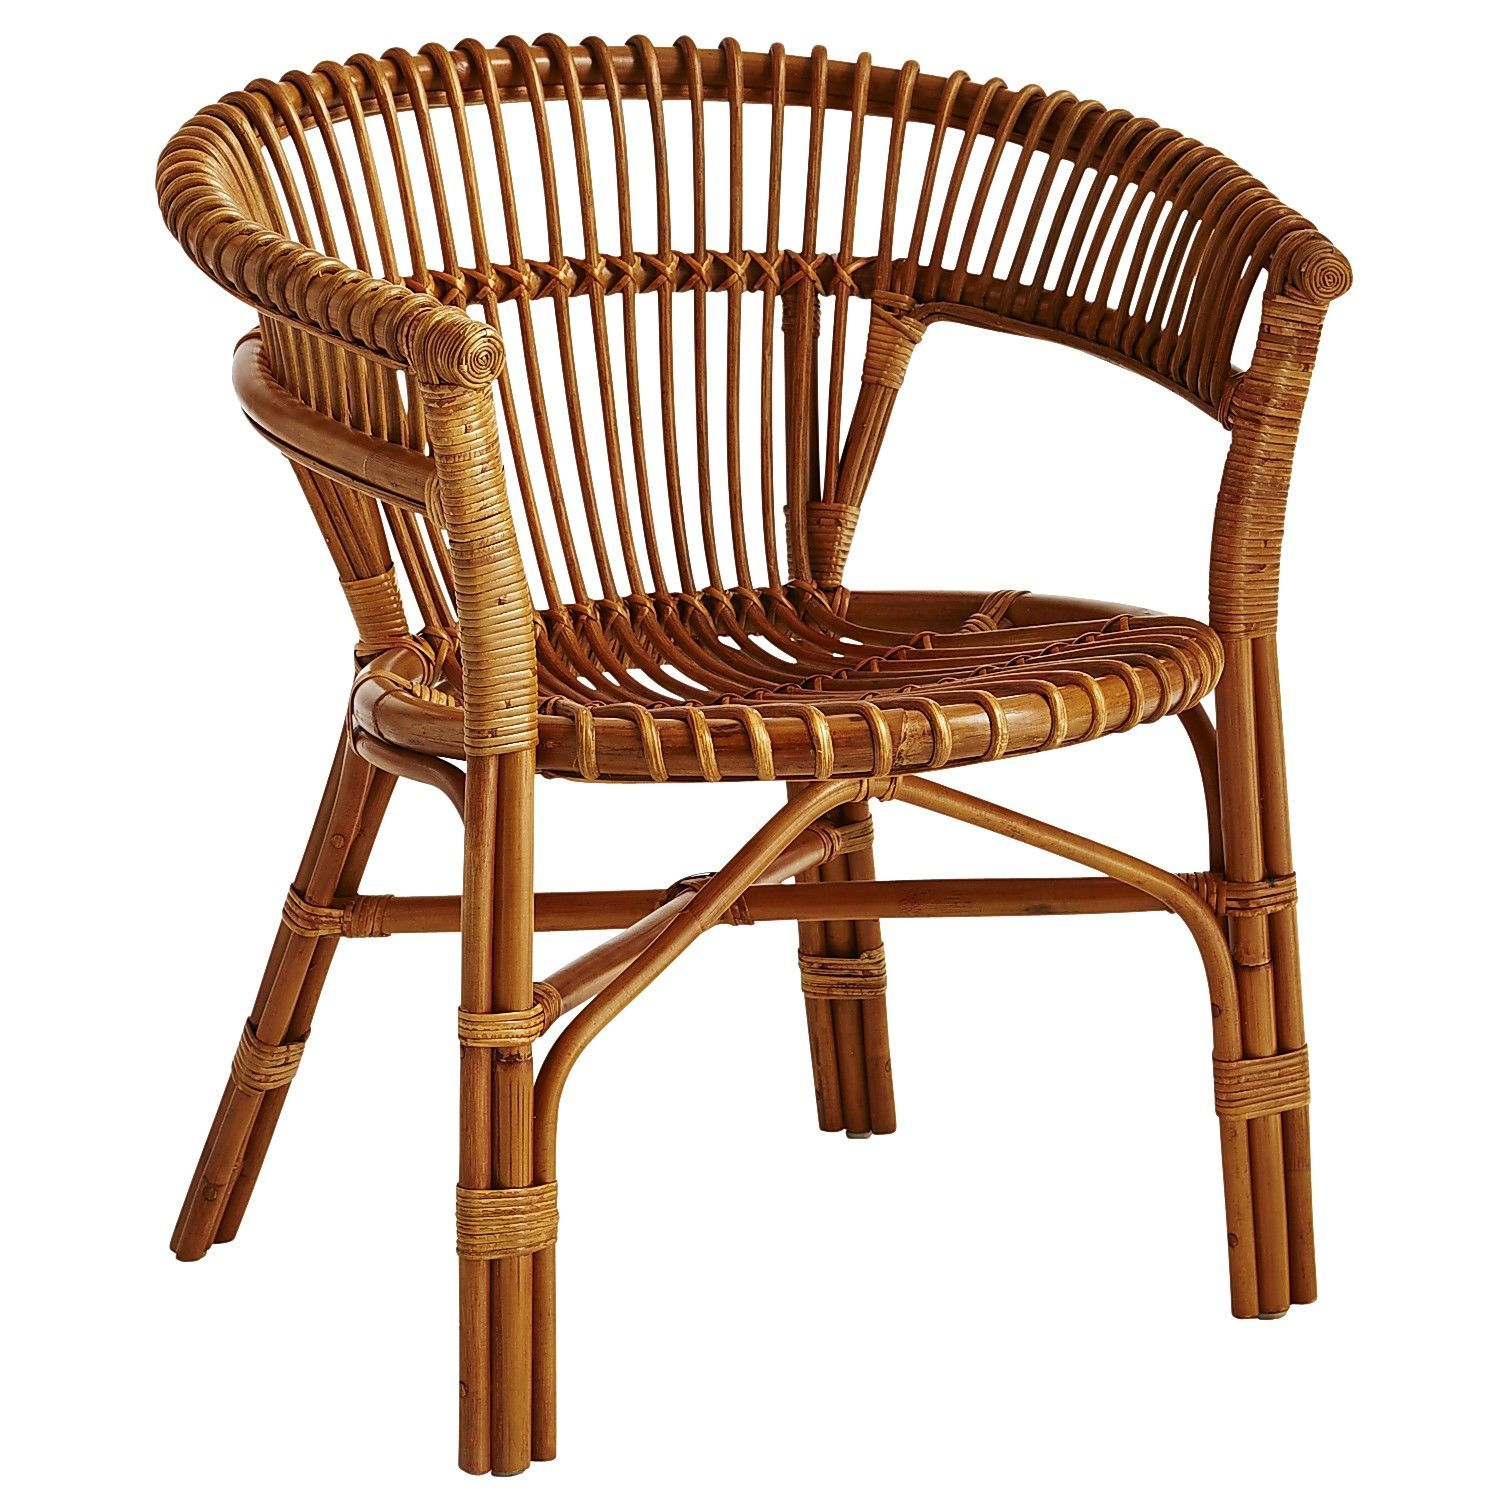 Bahasa Stacking Chair Natural Pier 1 Imports 84 96 On